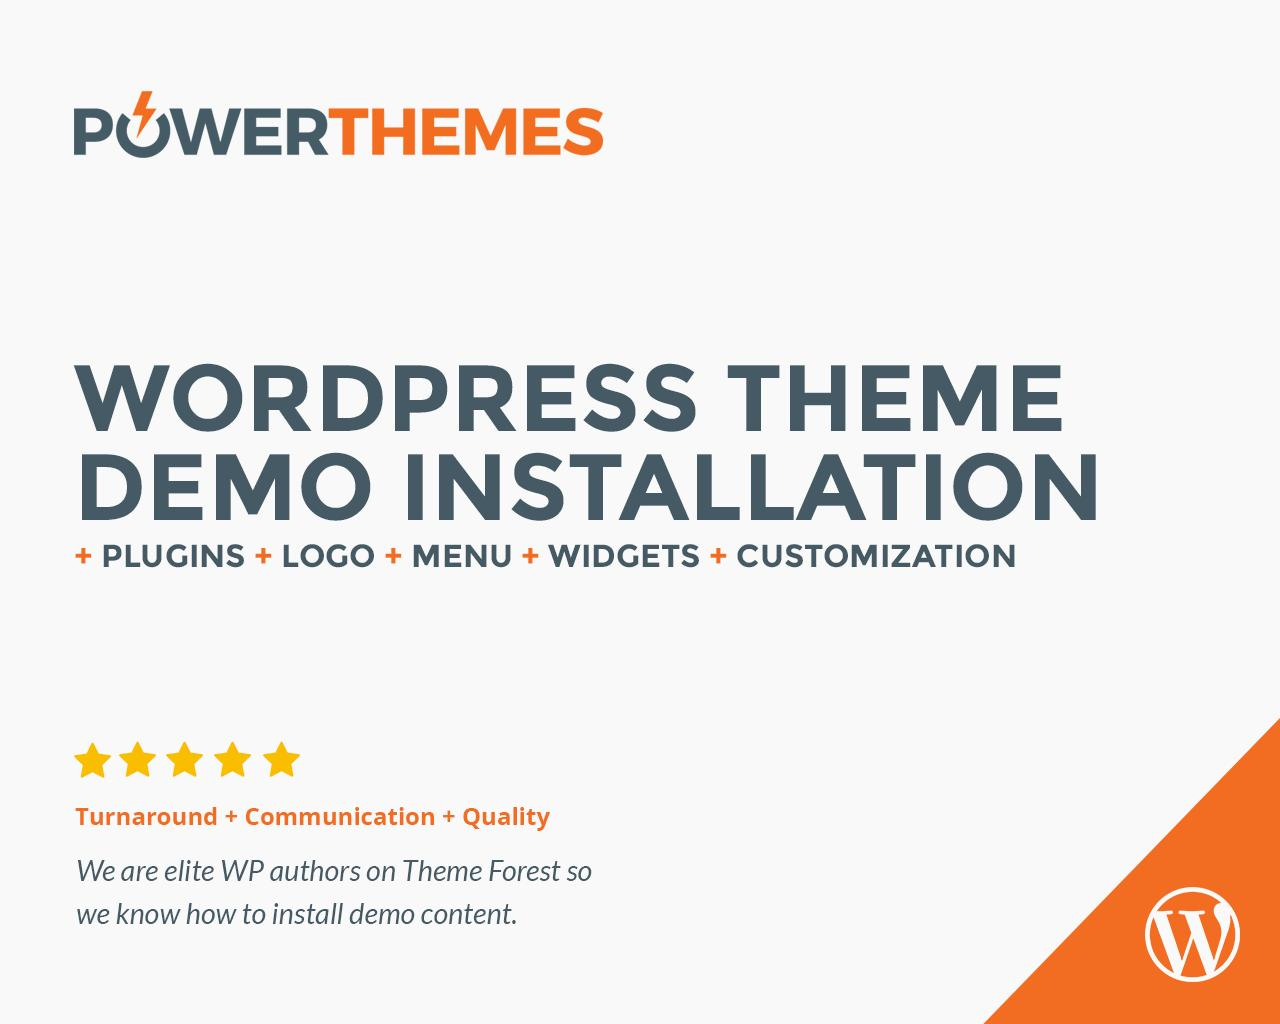 Wordpress Theme Demo Content & Plugins Installation by pebas - 78592